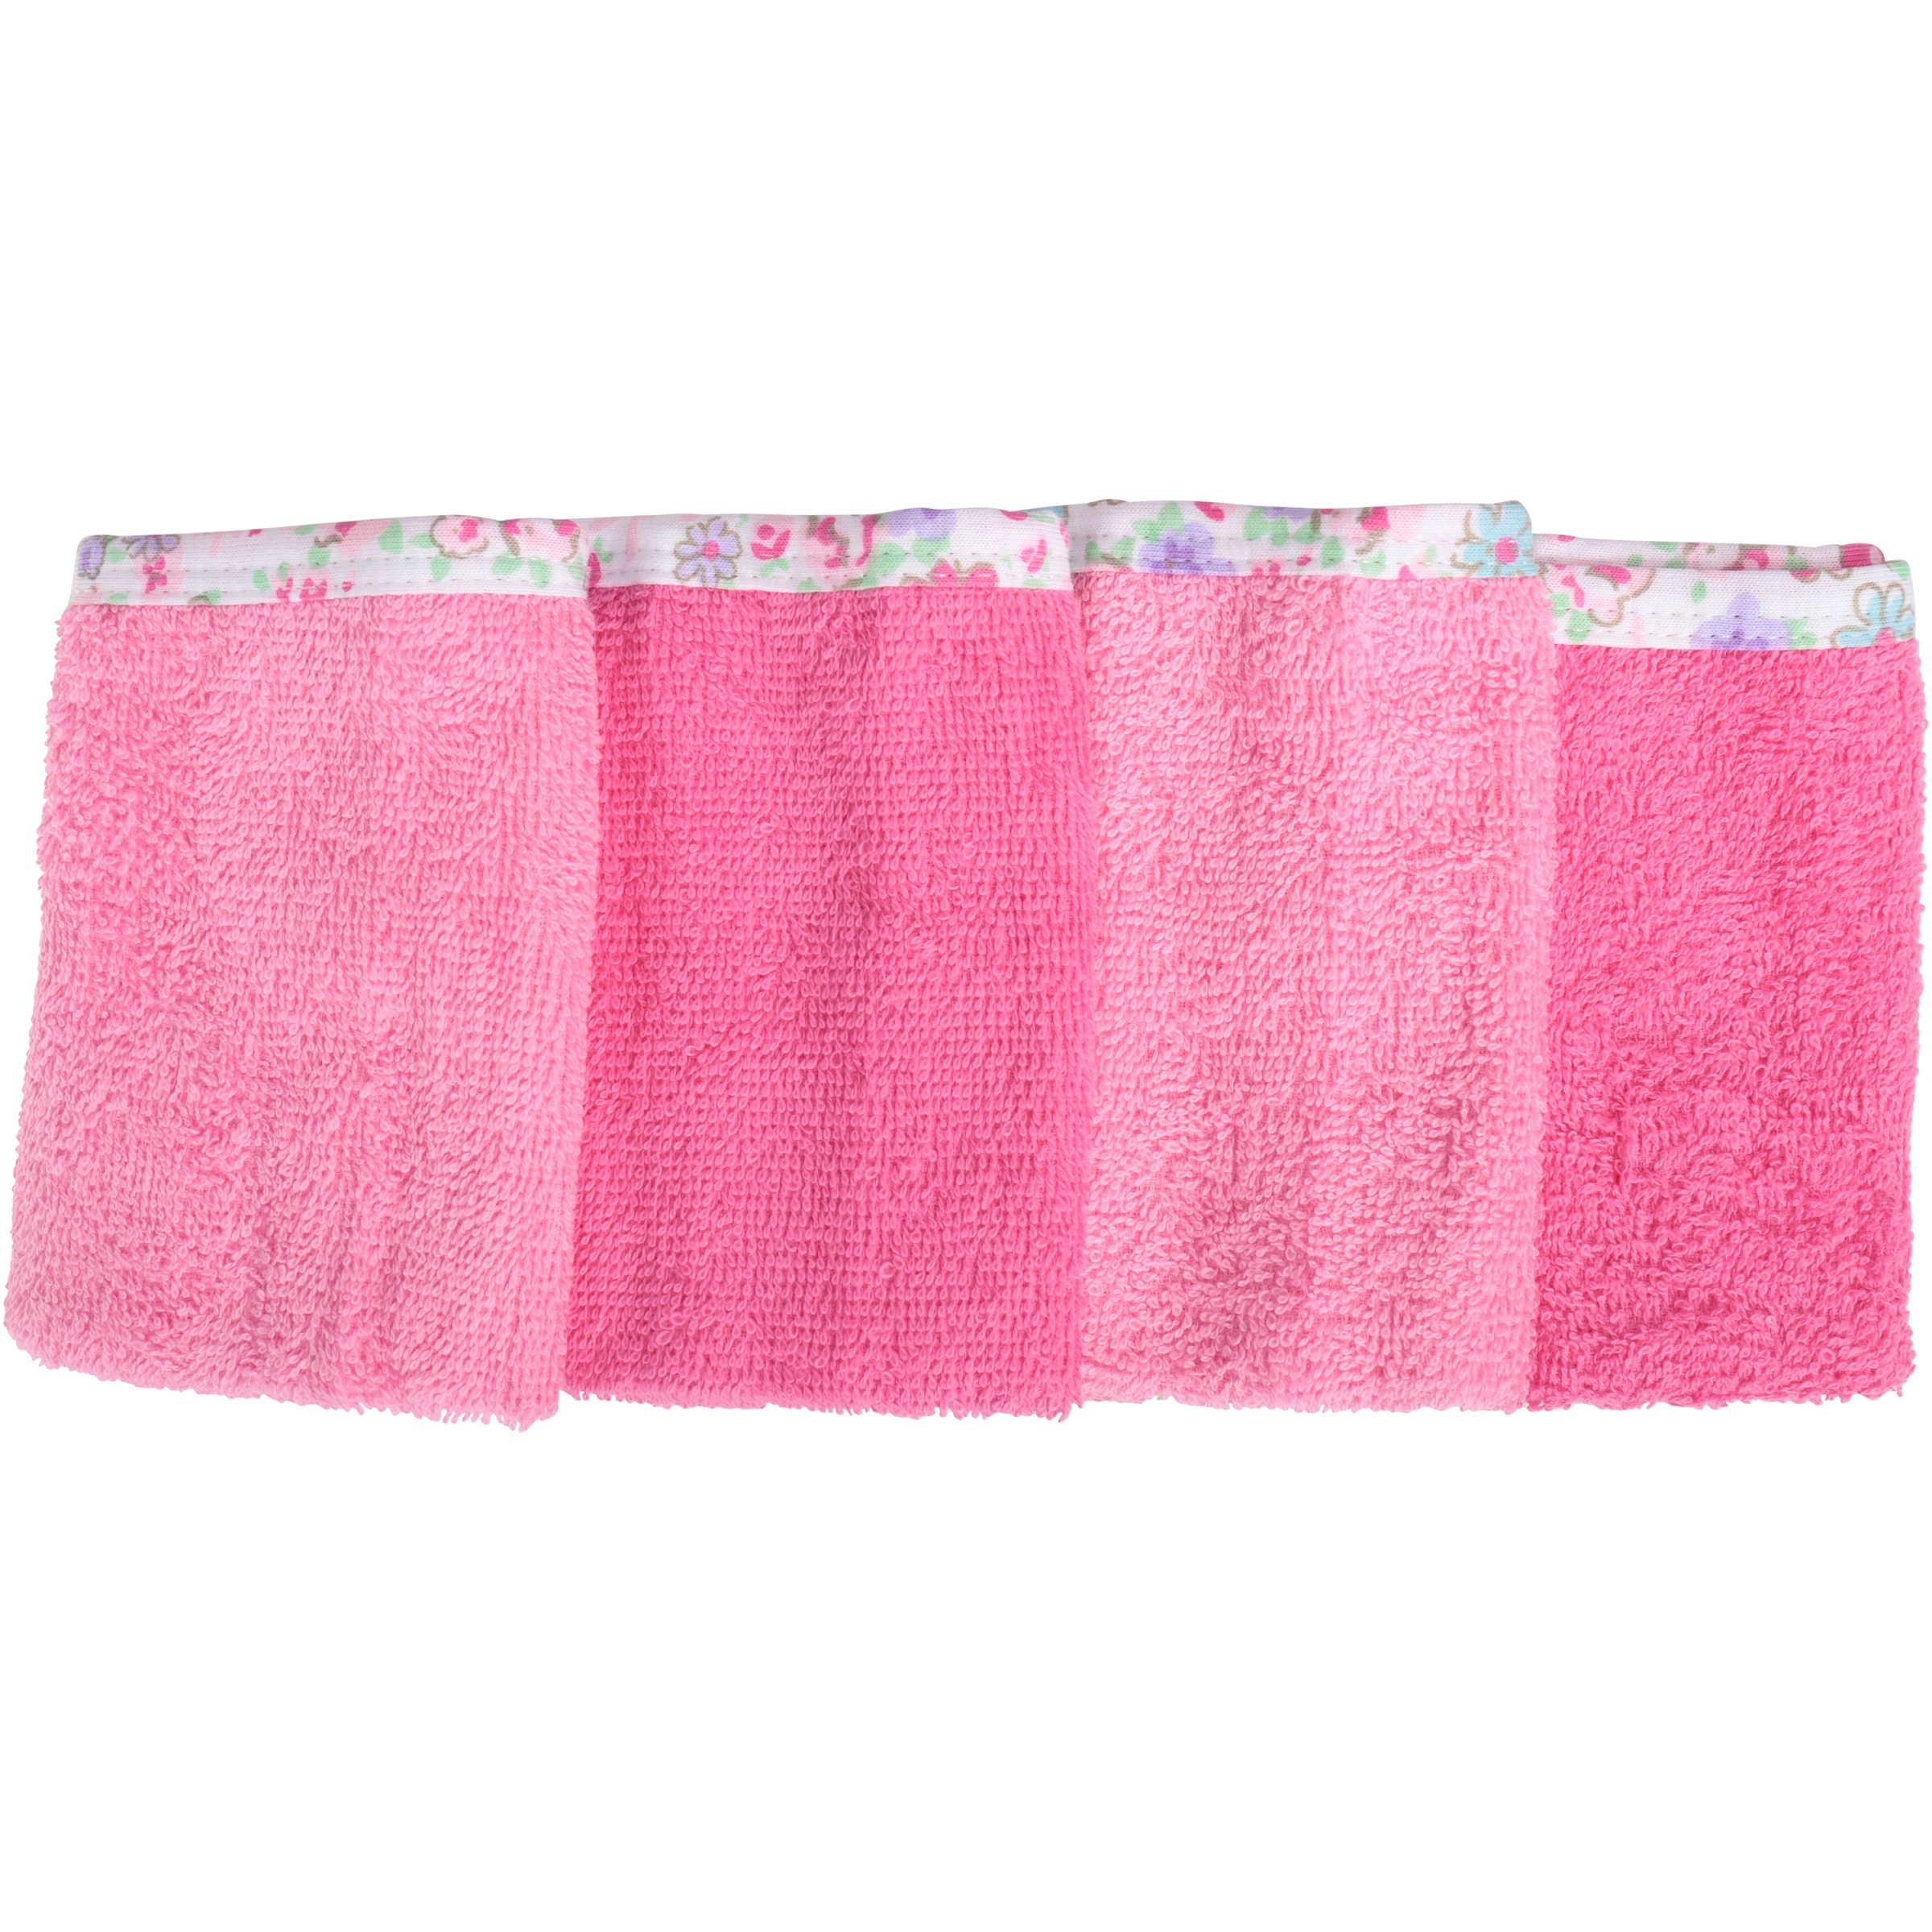 Newborn Baby Girl Assorted Woven Premium Solid Washcloths, 4-Pack